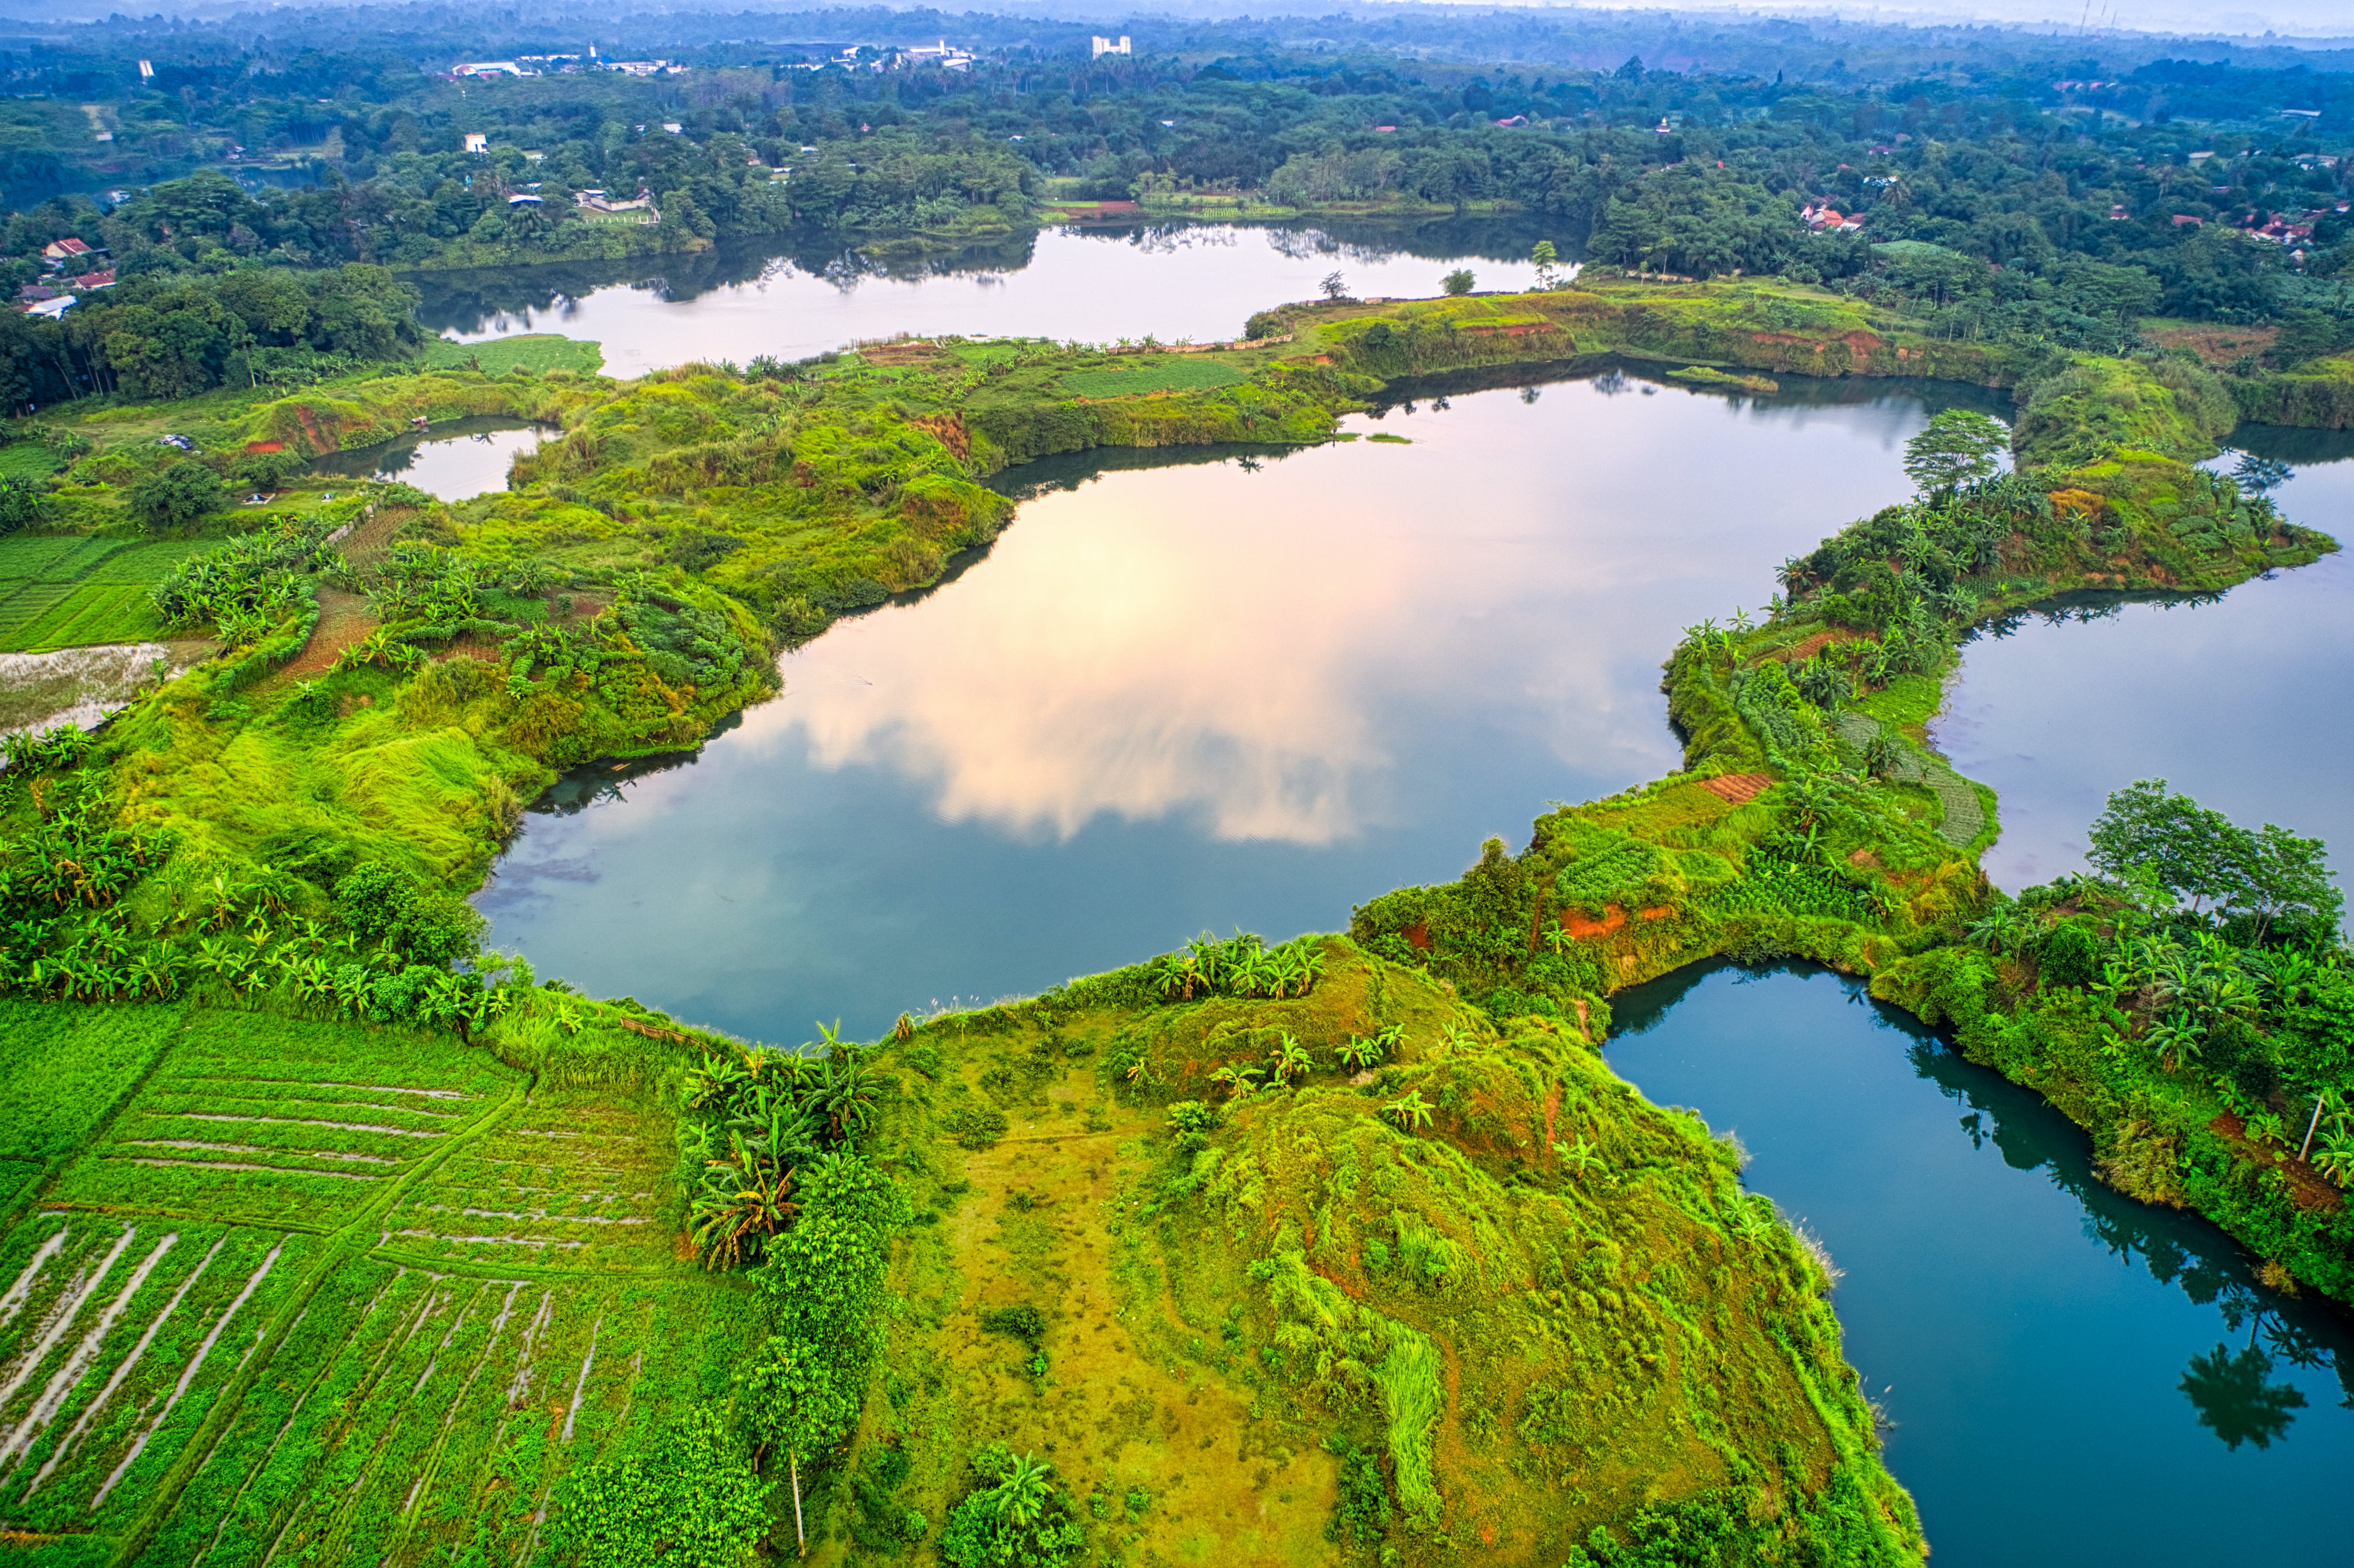 Aerial View of Body of Water at Rural Area